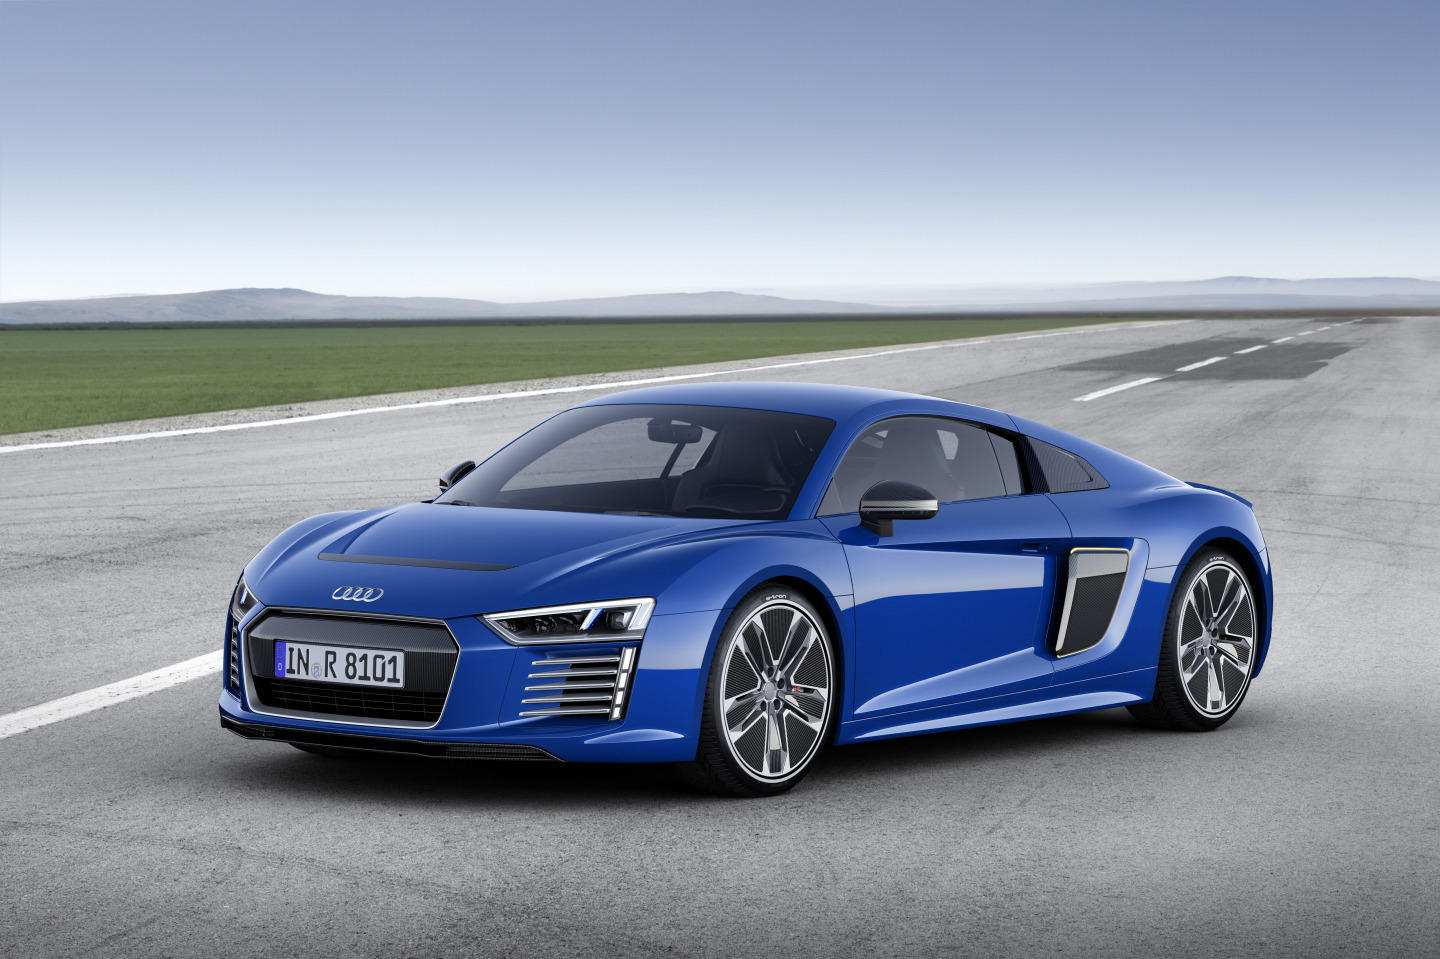 36 Best Review 2020 Audi Uno Concept Photos for 2020 Audi Uno Concept